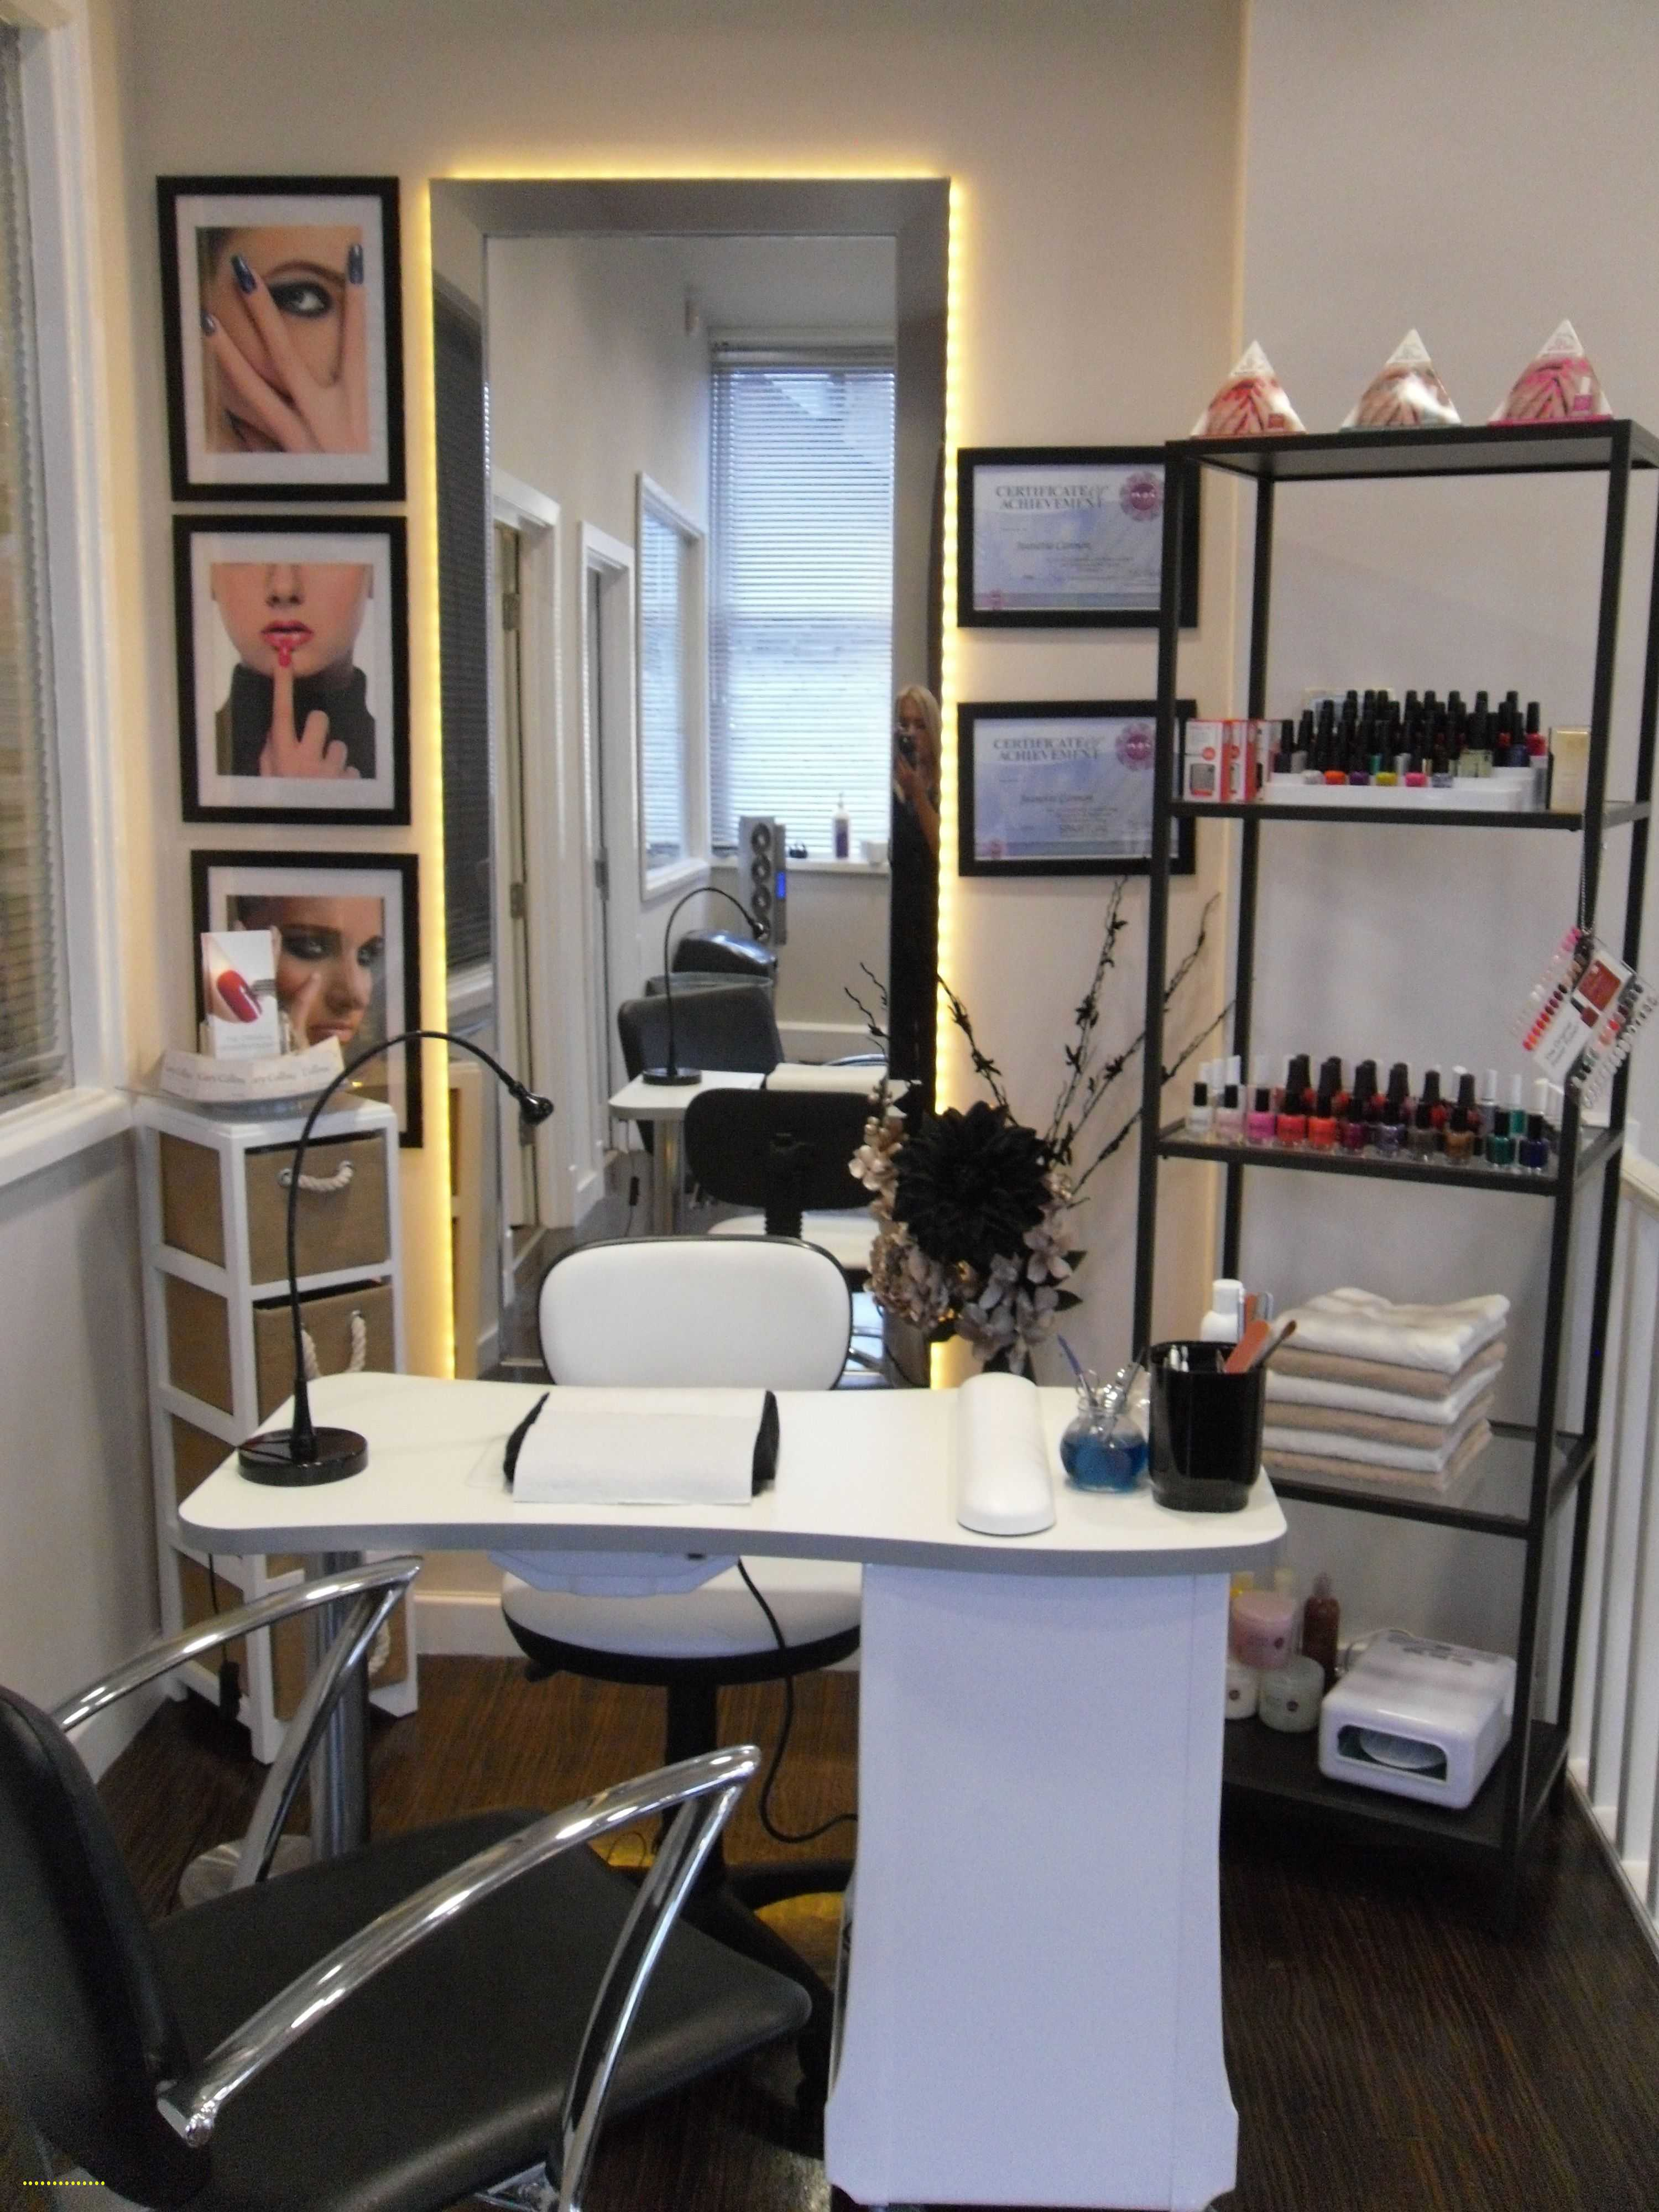 18 Reasons You Should be Talking About Home Salon Idea  Salon de